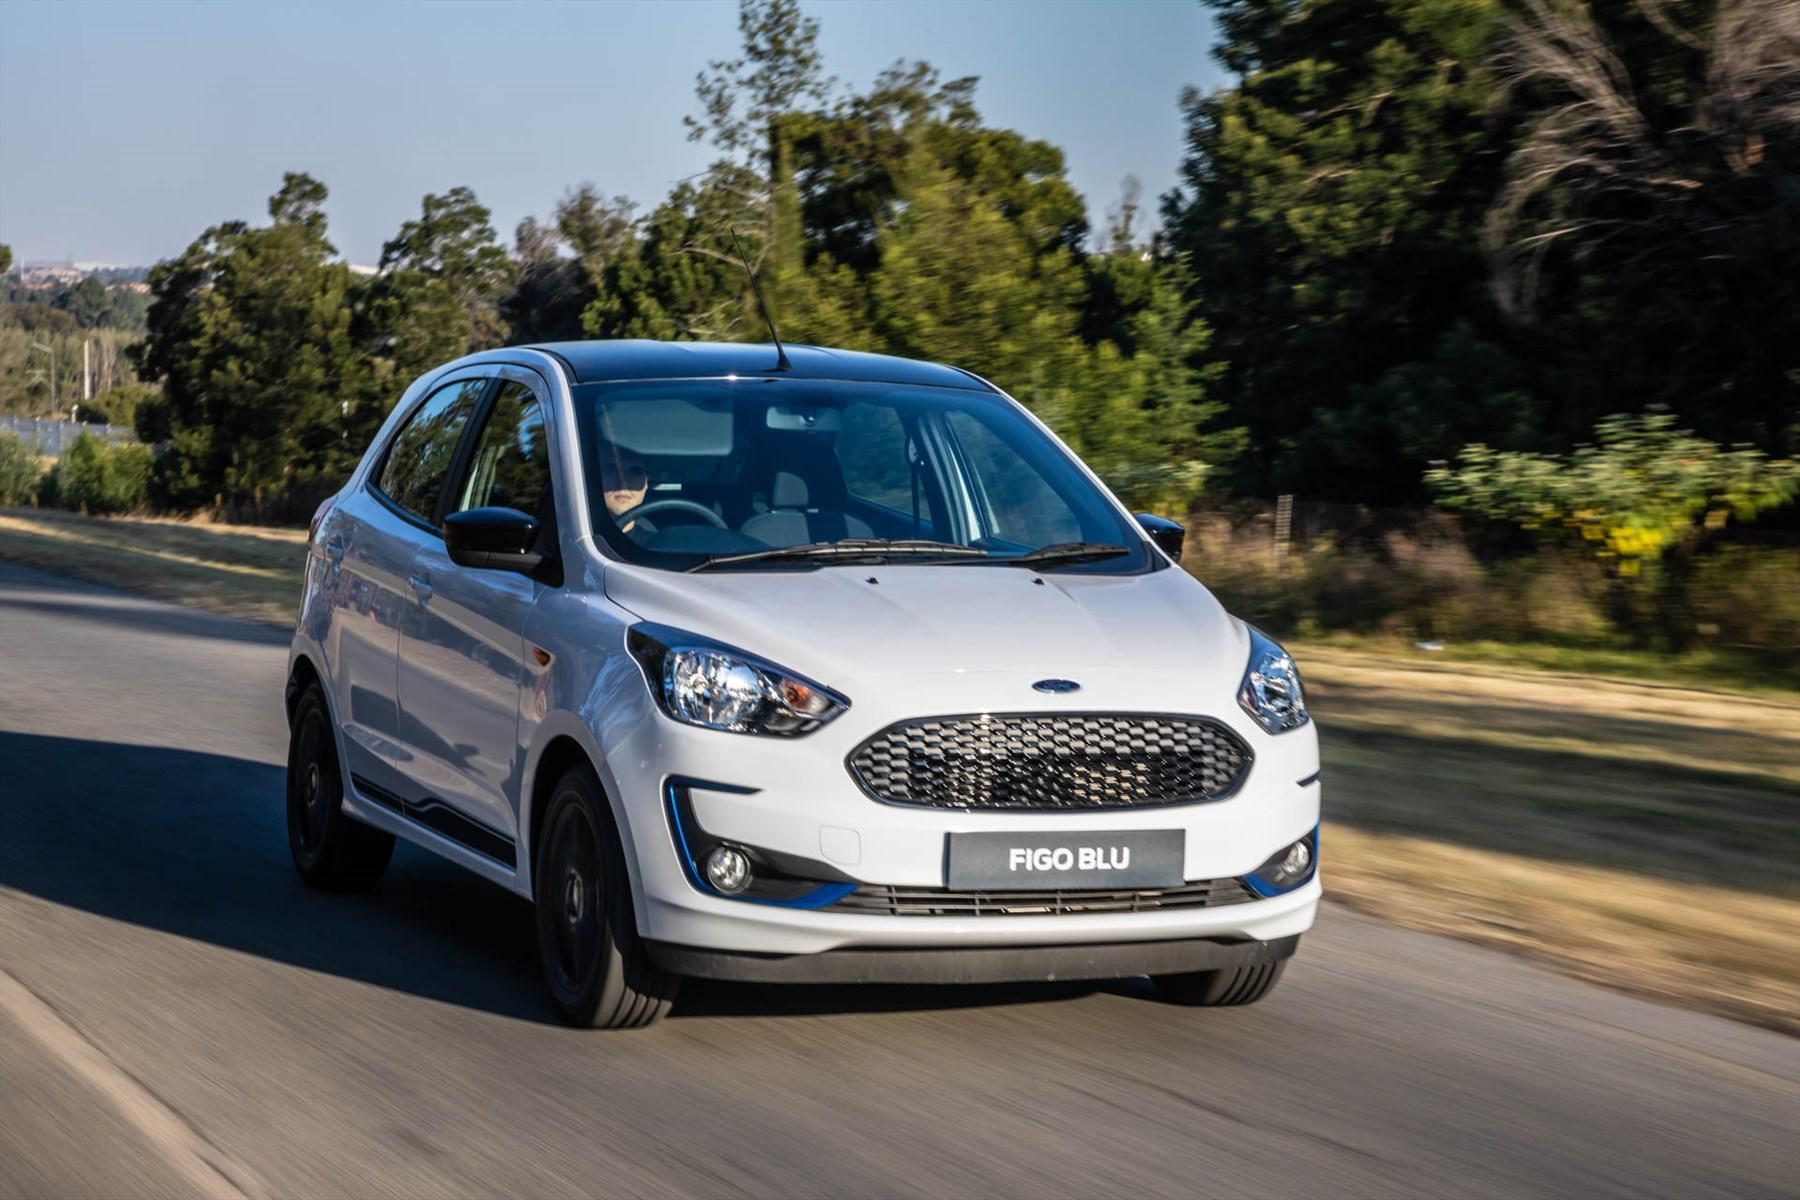 Ford adds new features to their Figo range